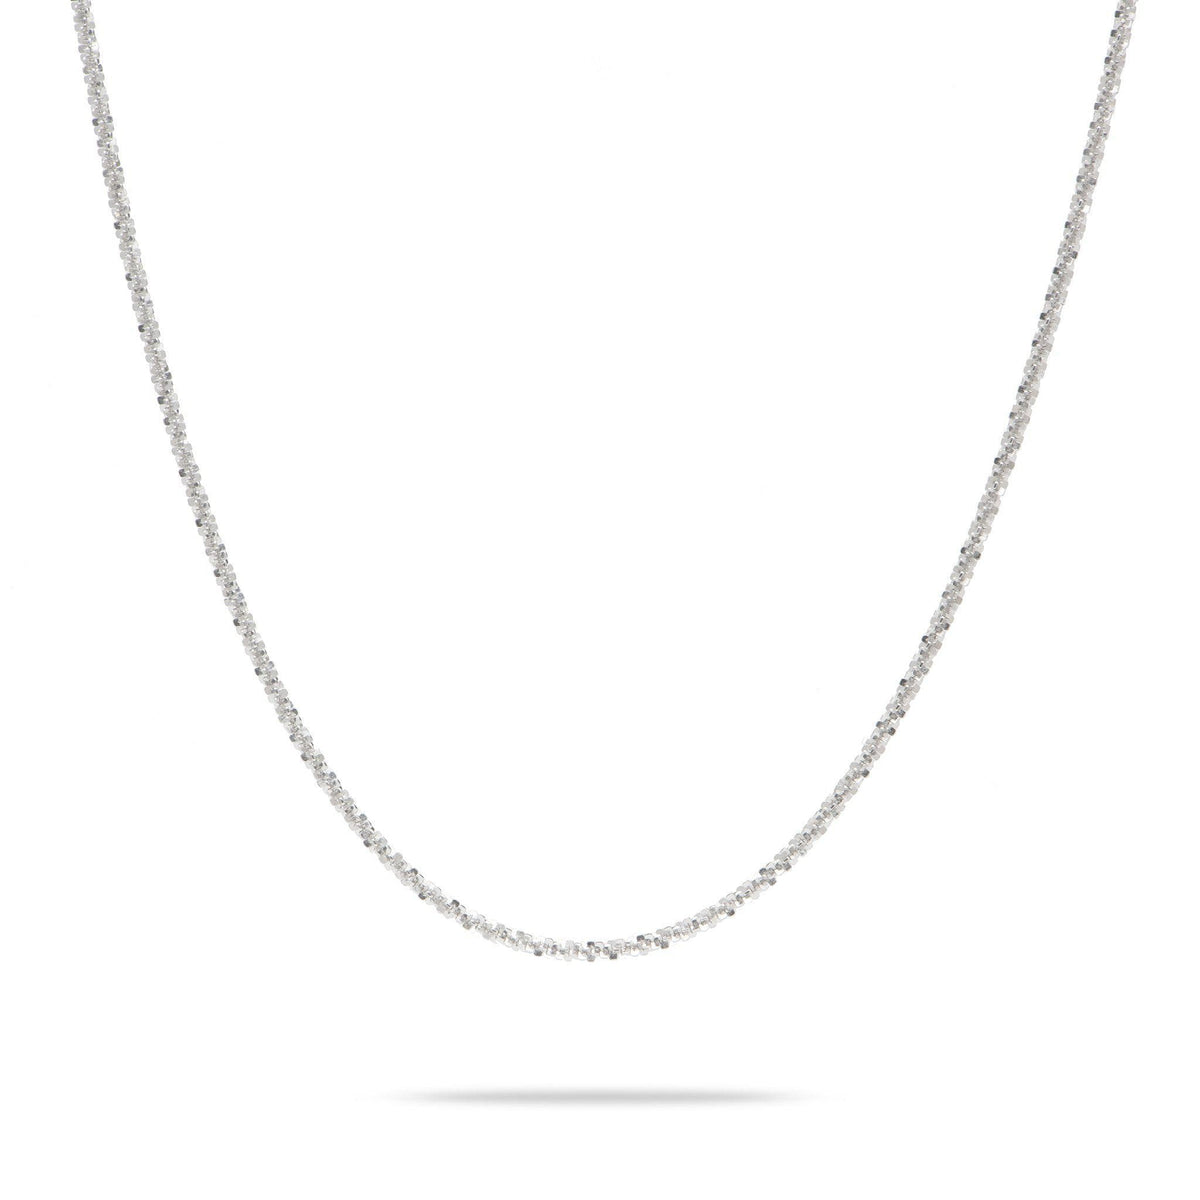 "Sterling Silver Adjustable Margarita Chain in 24"" 1.5mm-[SKU]"